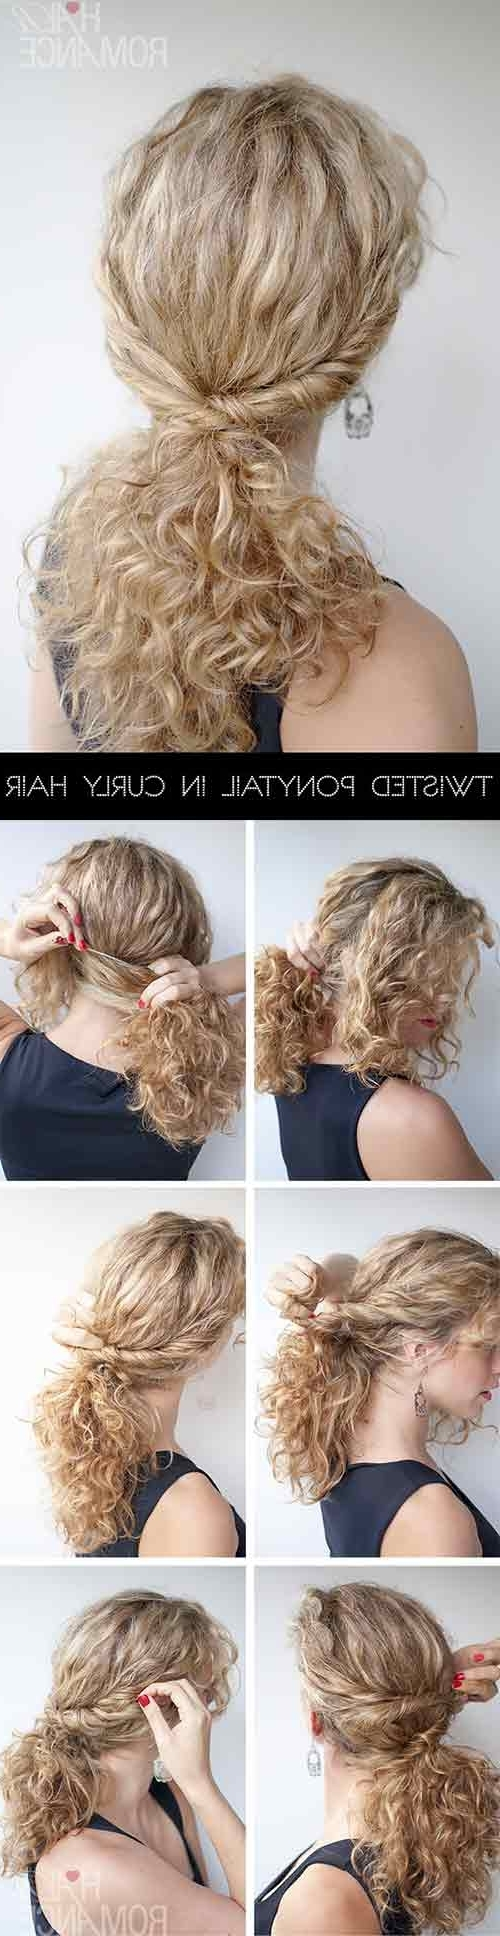 Most Recent Botticelli Ponytail Hairstyles Within 20 Amazing Hairstyles For Curly Hair For Girls (View 10 of 20)